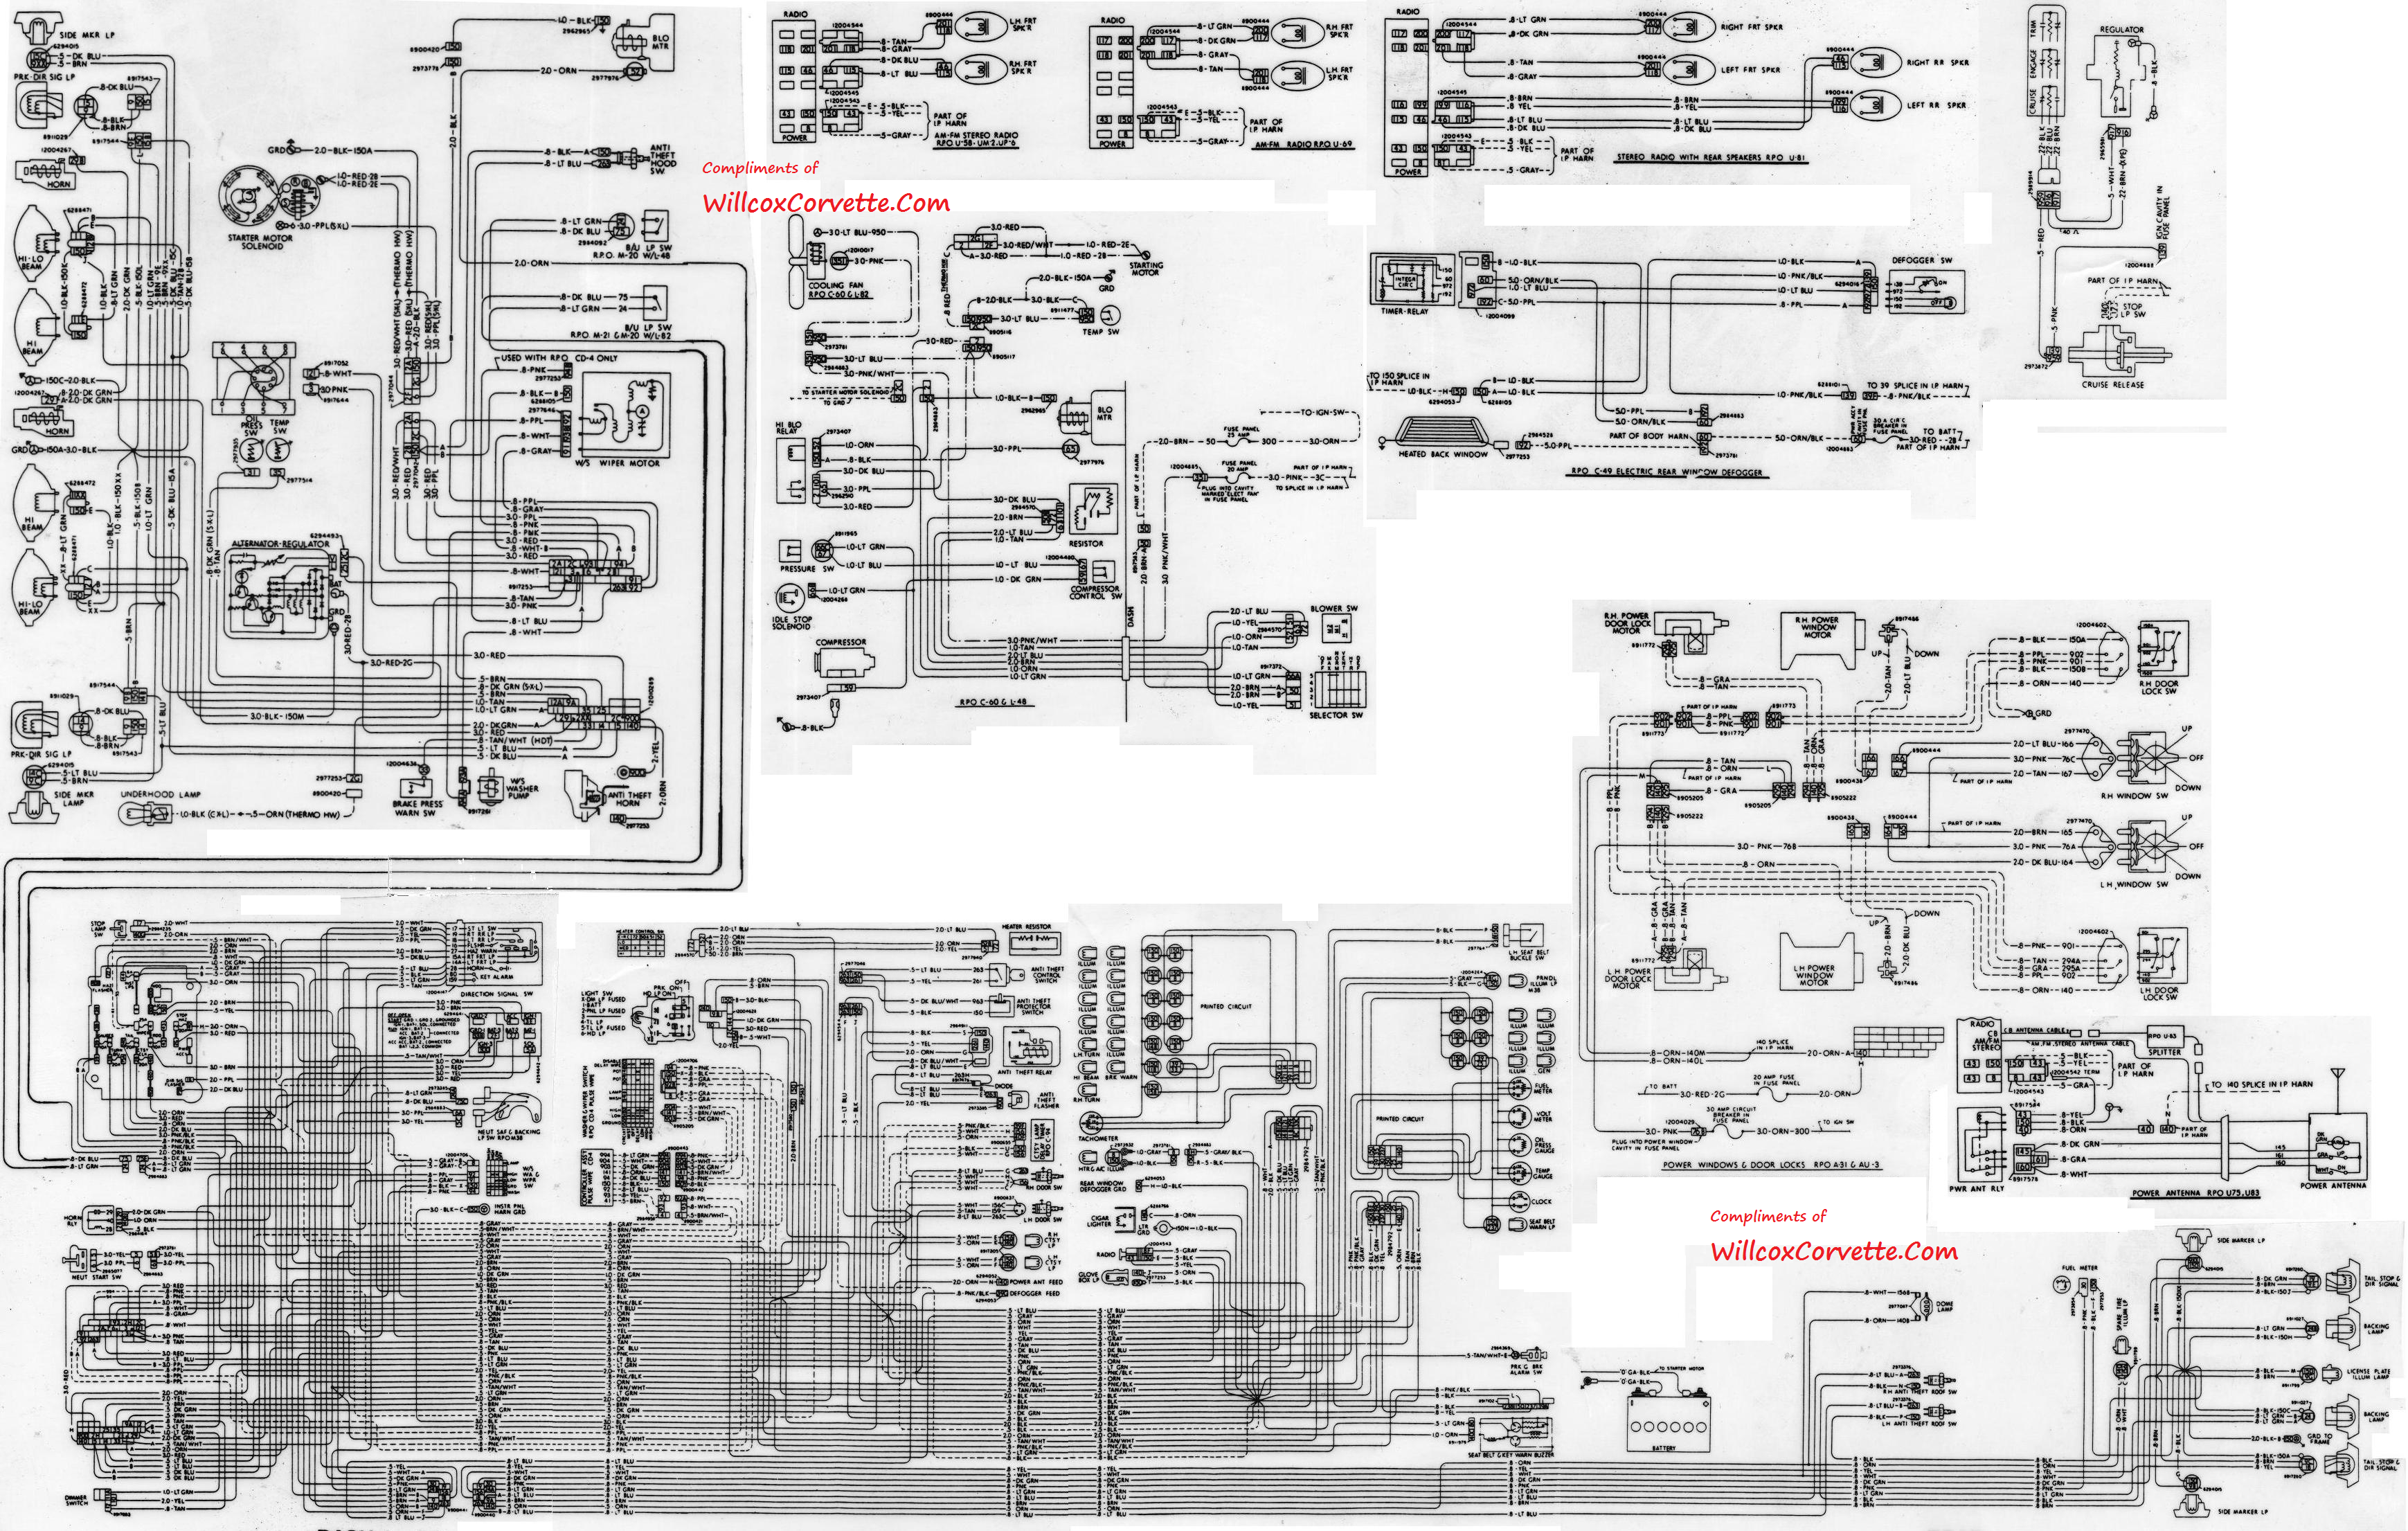 1979 wiring diagram CorvetteForum Chevrolet Corvette Forum